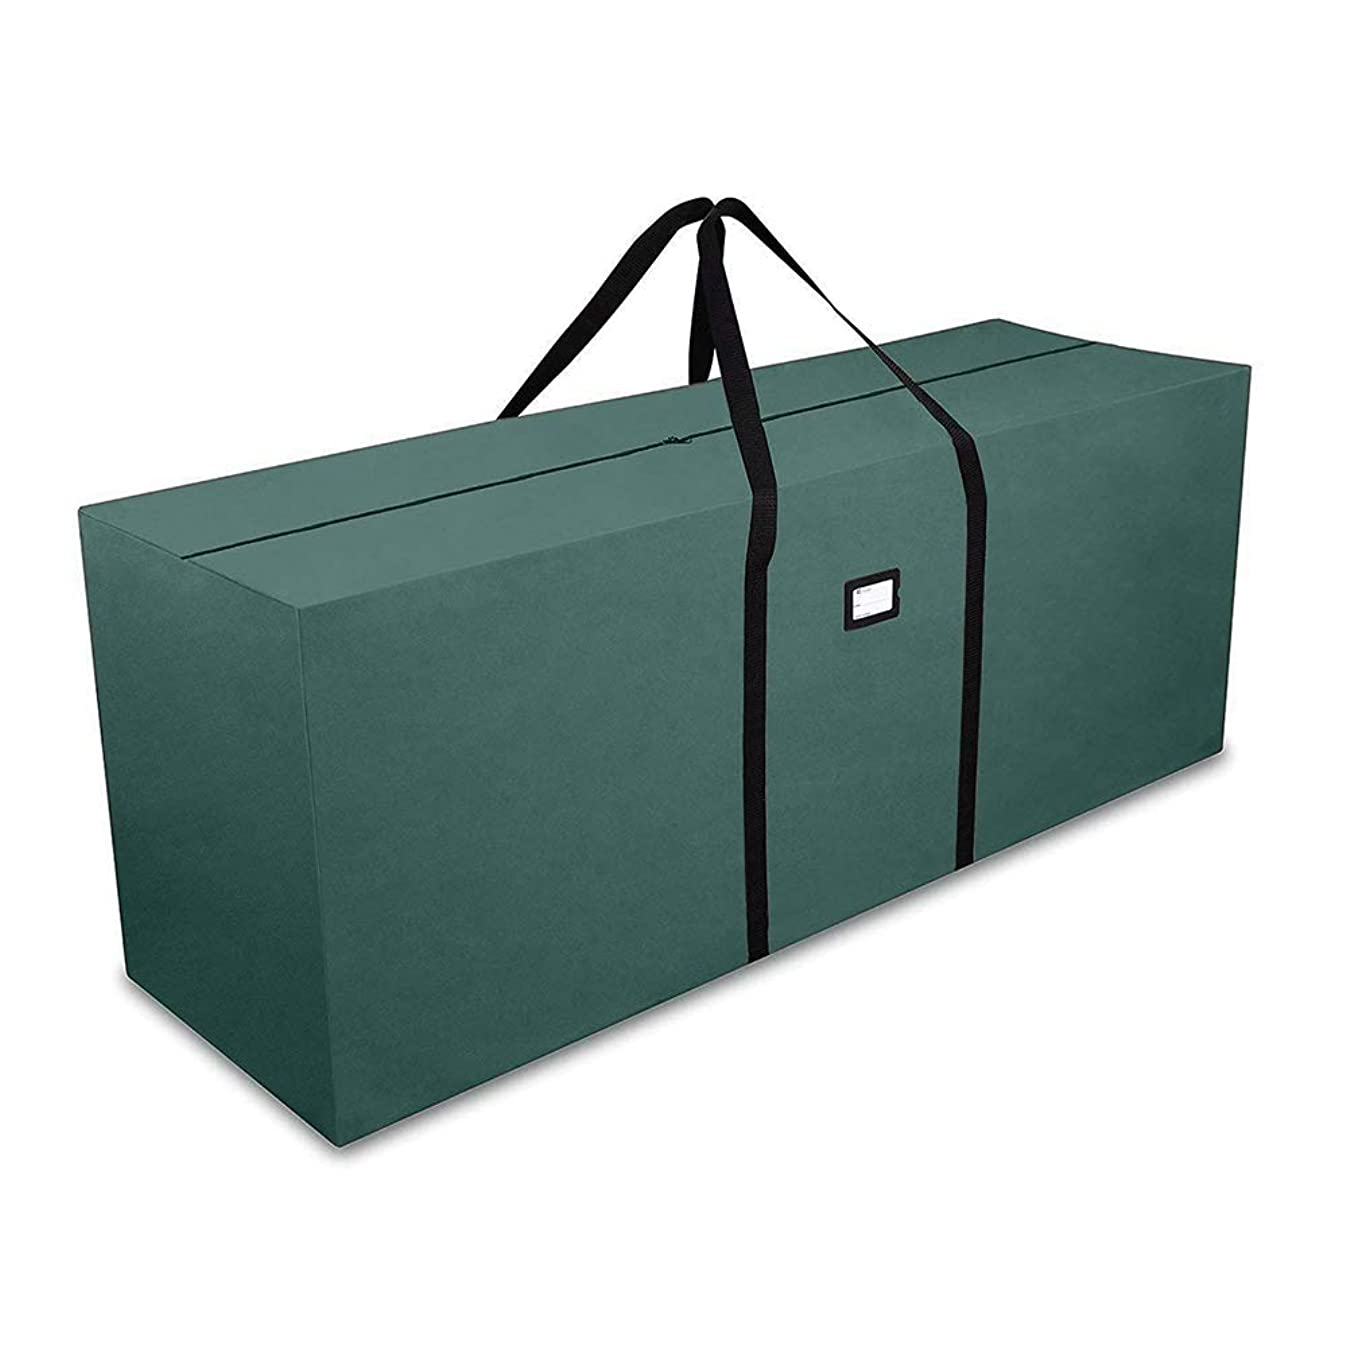 Primode Holiday Tree Storage Bag, Heavy Duty Storage Container, 25